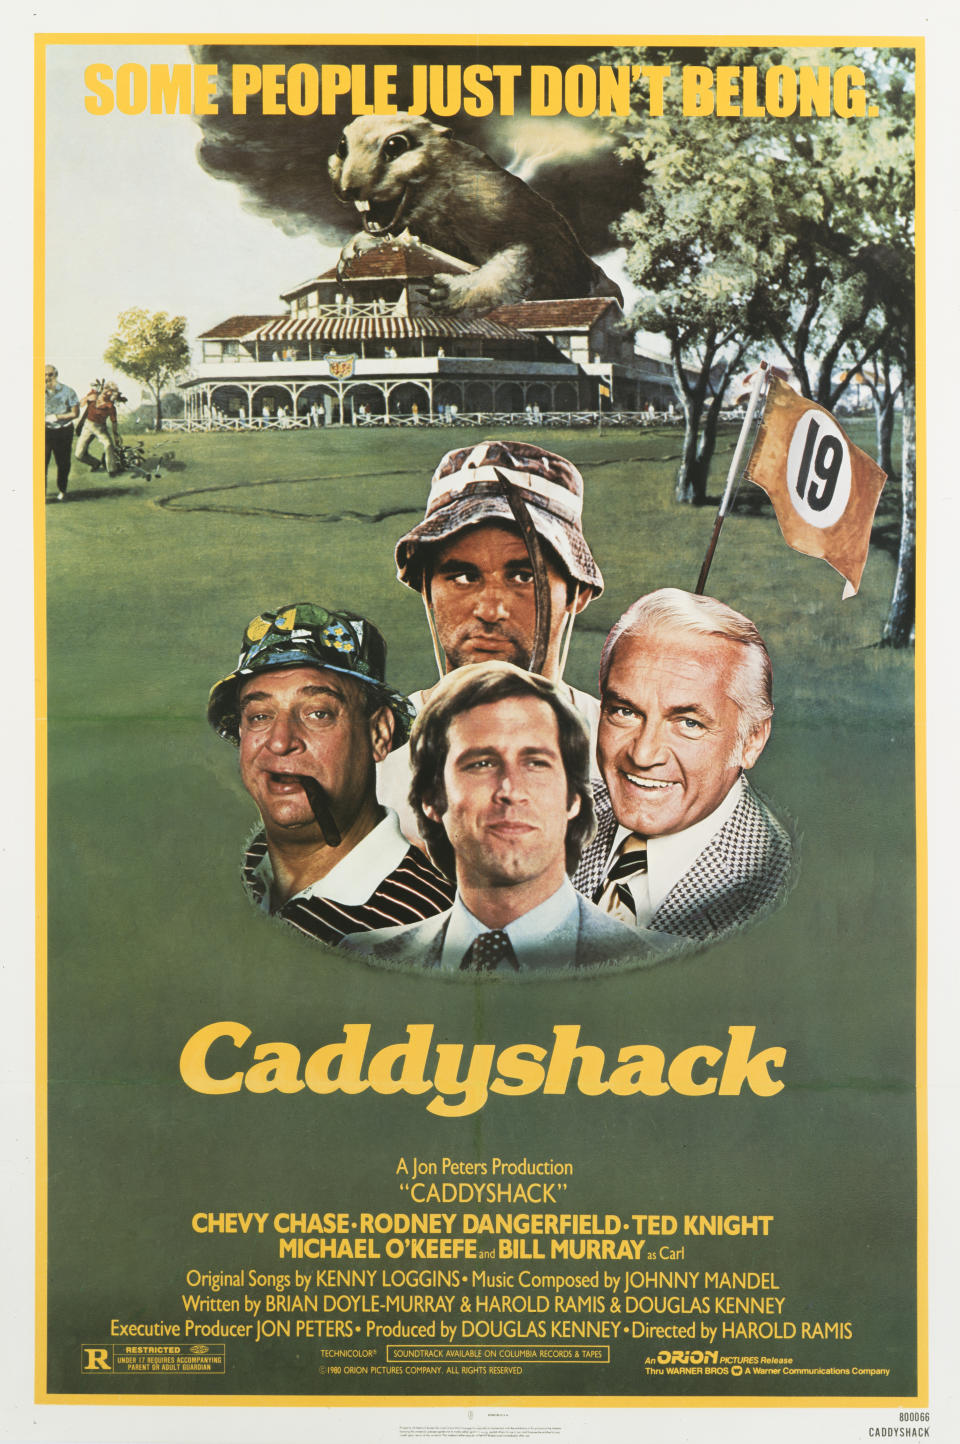 A poster for Harold Ramis' 1980 comedy 'Caddyshack' starring Chevy Chase, Rodney Dangerfield, Bill Murray, and Ted Knight. (Photo by Movie Poster Image Art/Getty Images)